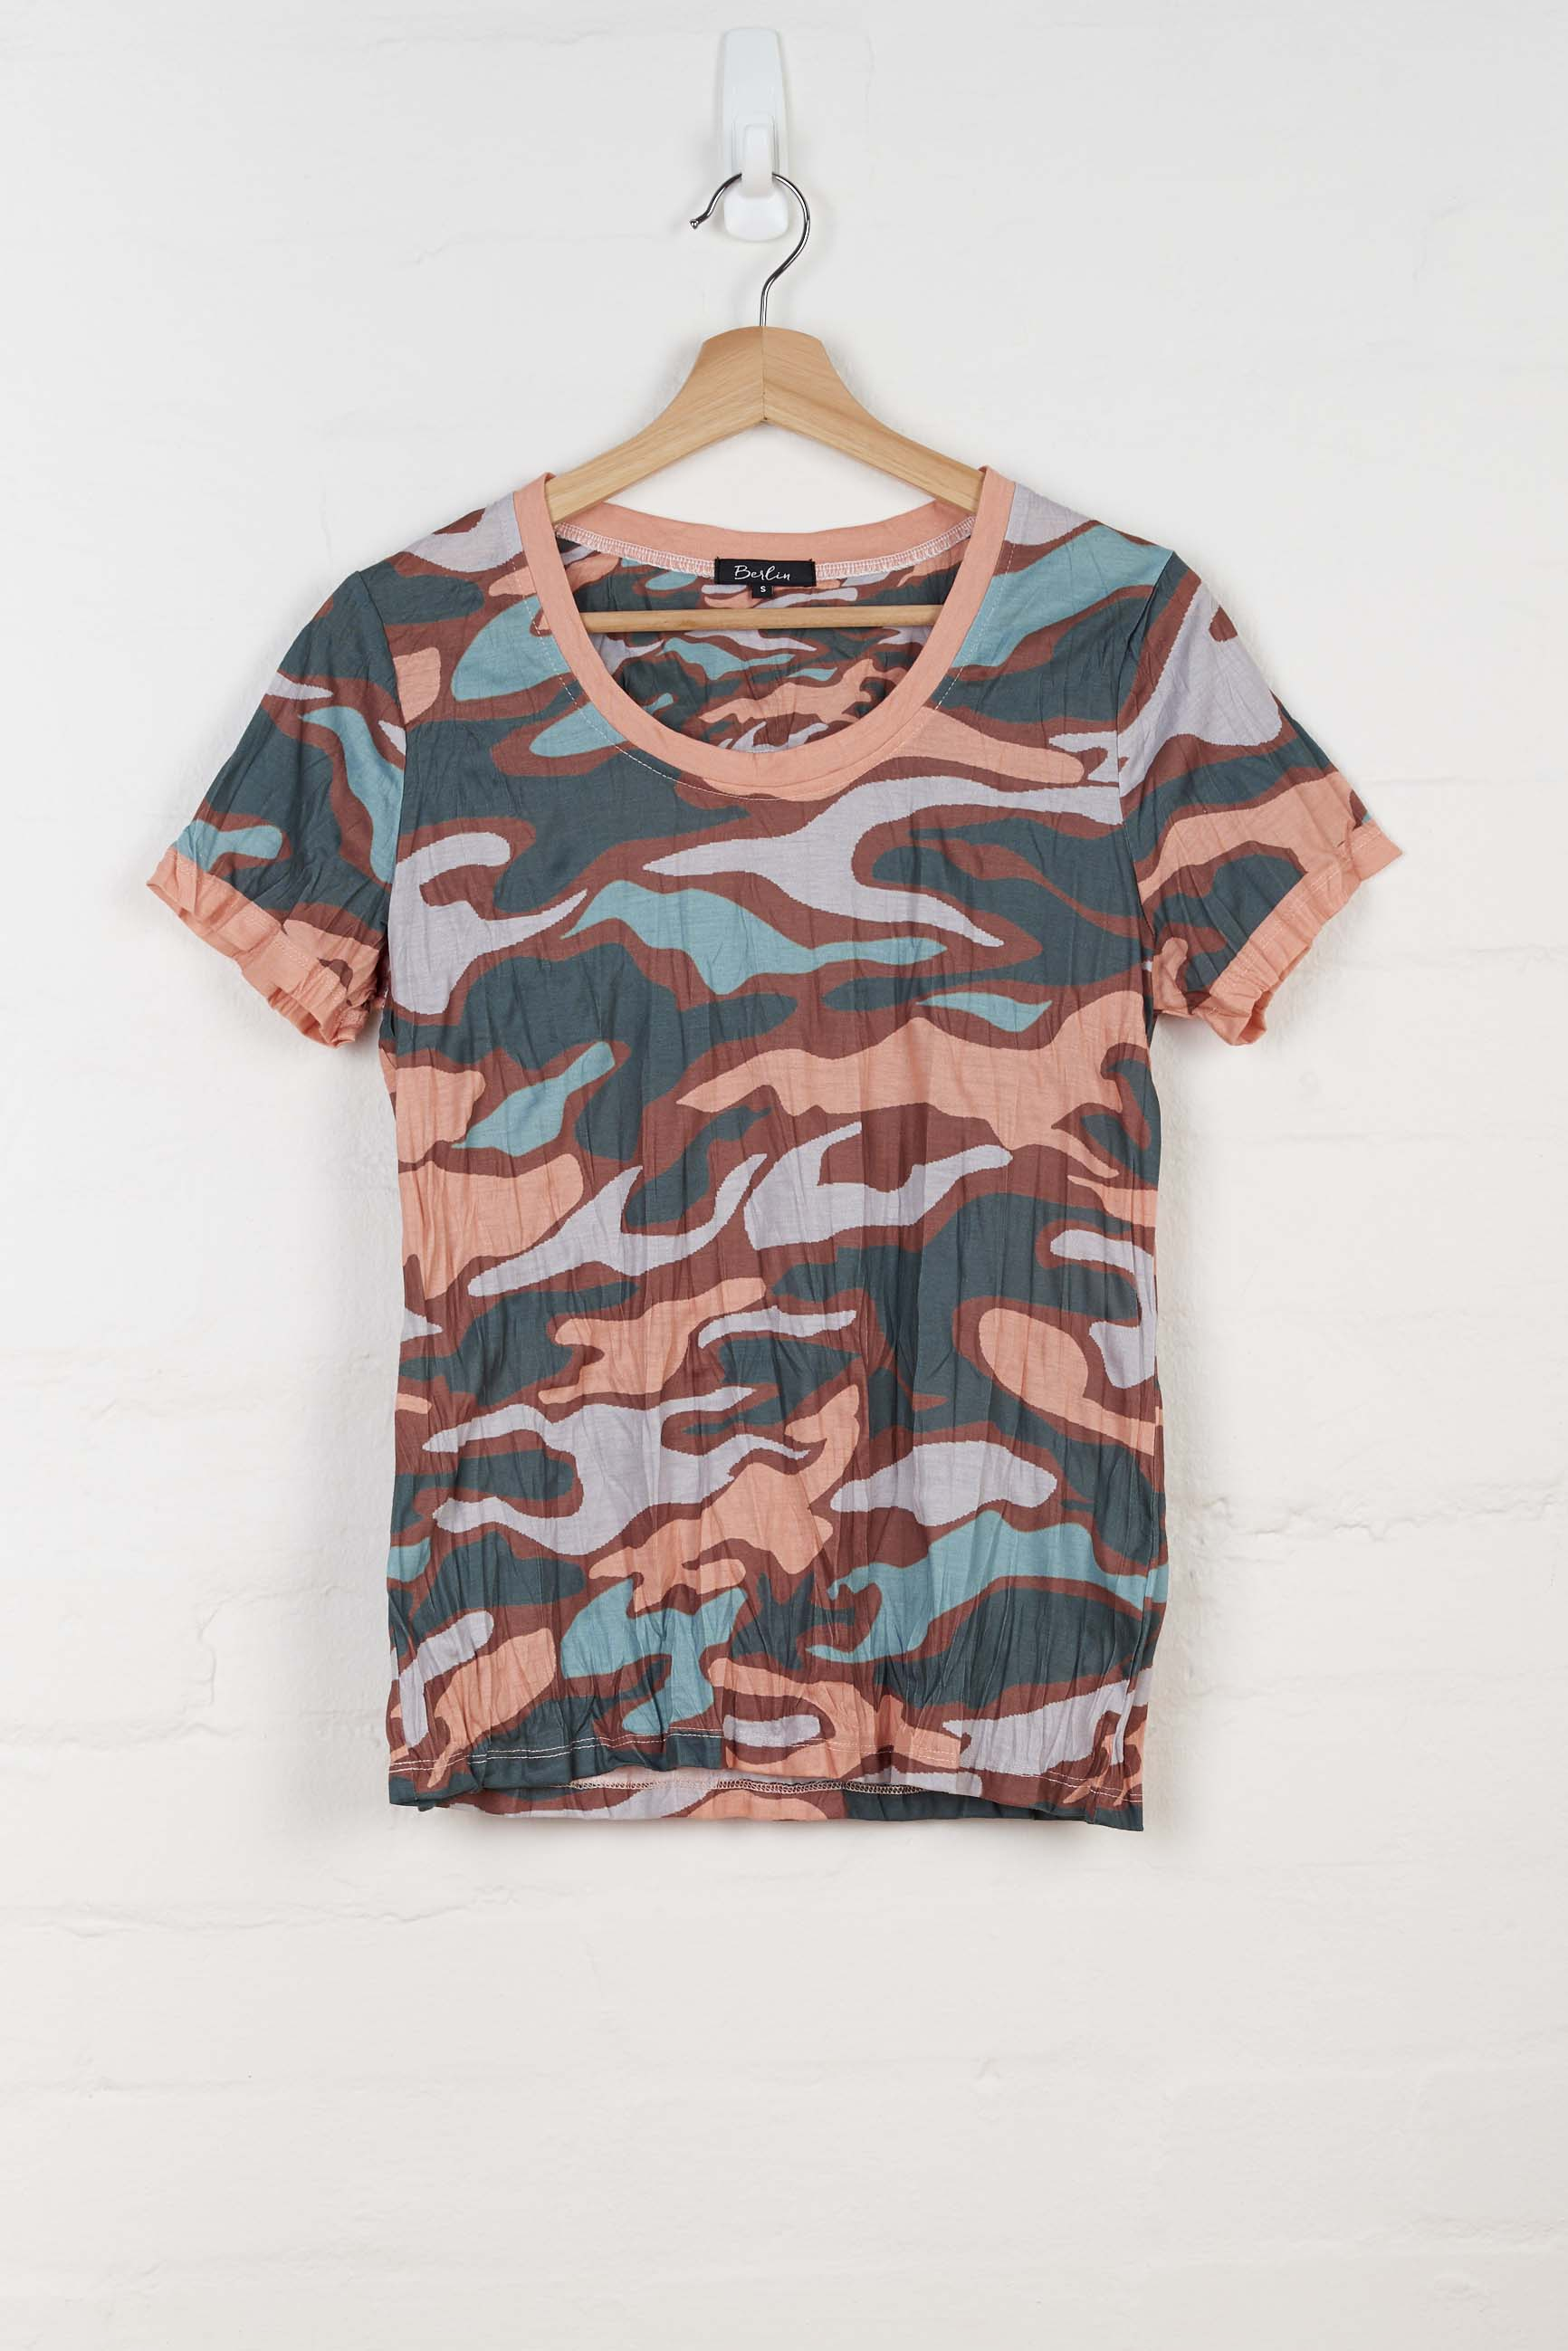 B1127 Camo Short Sleeve Tee -  - Top - BERLIN - The Rarity Group